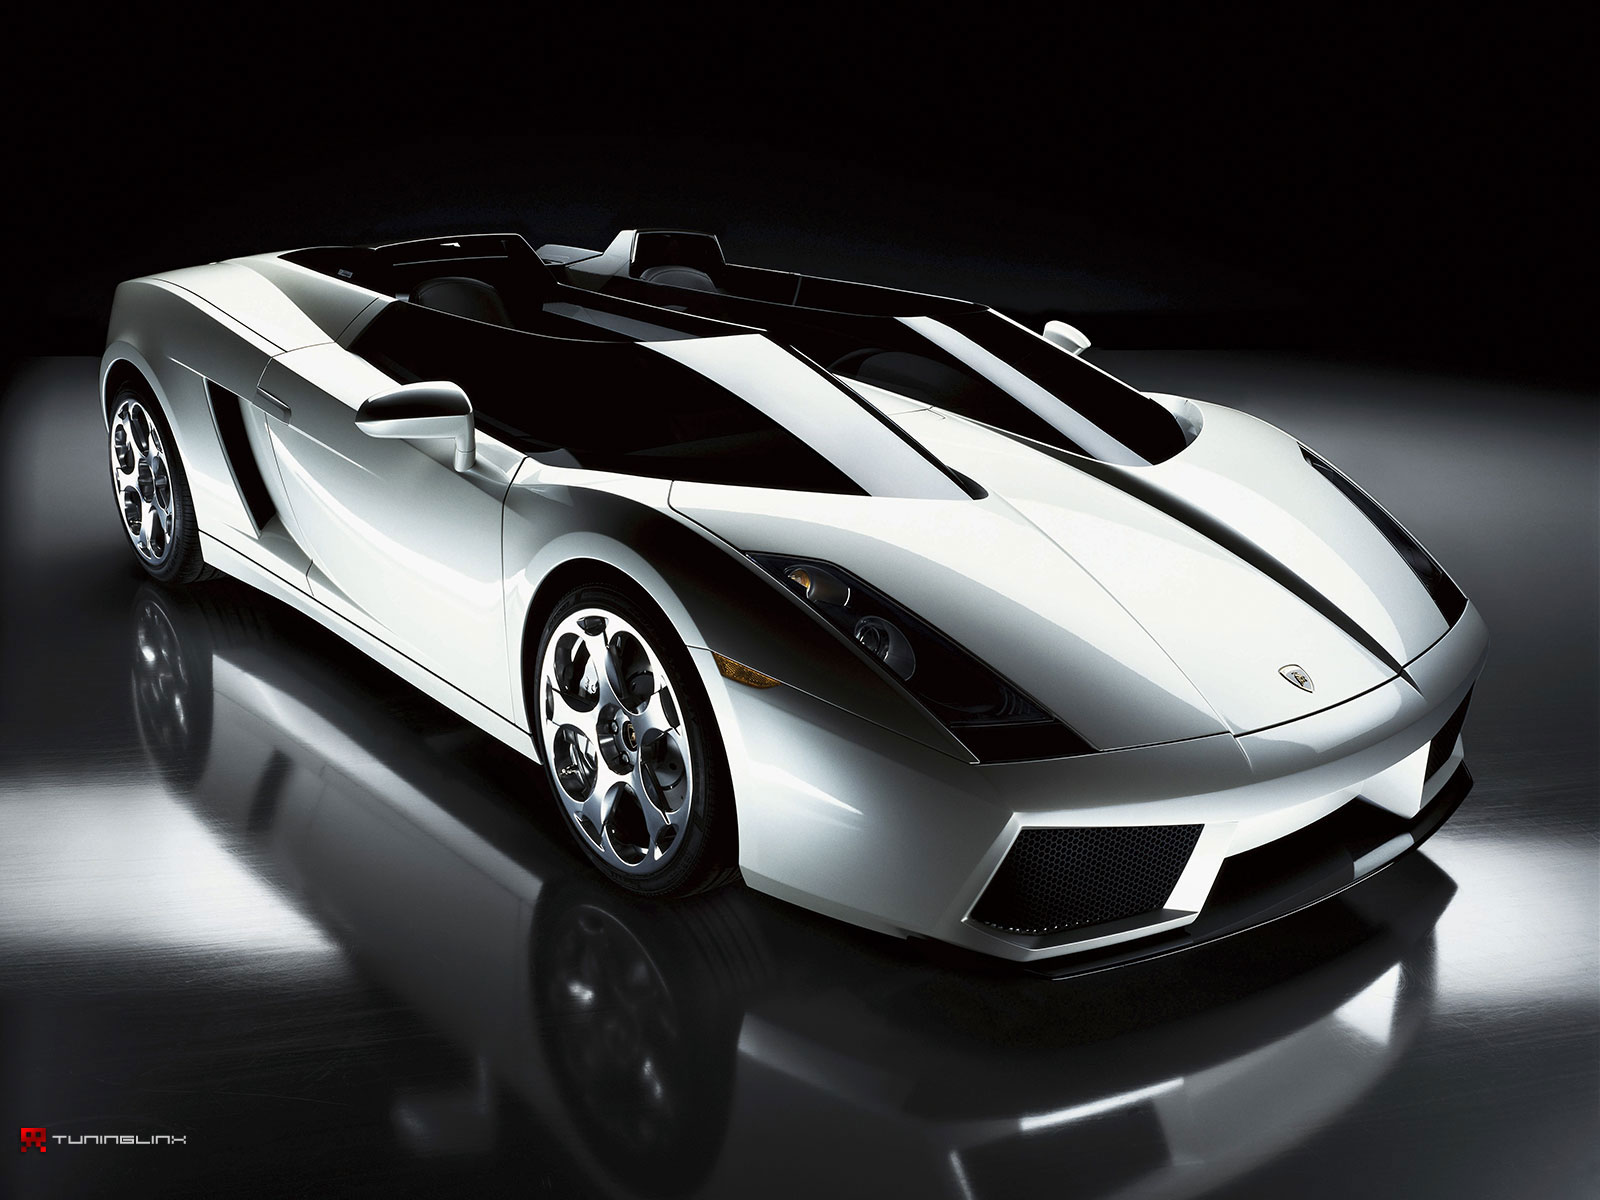 Lamborghini Car Wallpaper HD